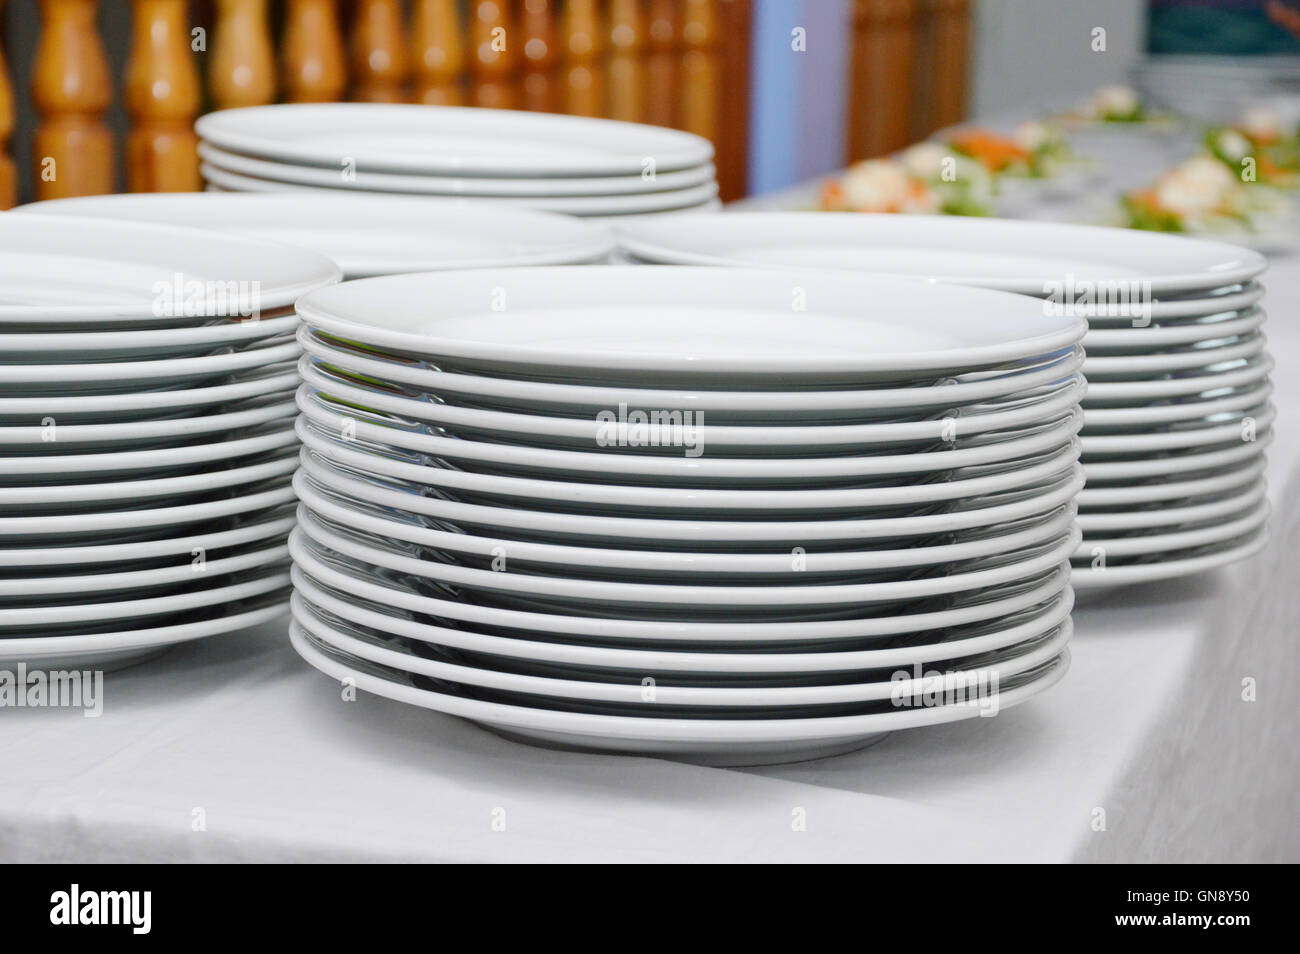 saucers piled ready to serve meals in a gala diner. - Stock Image